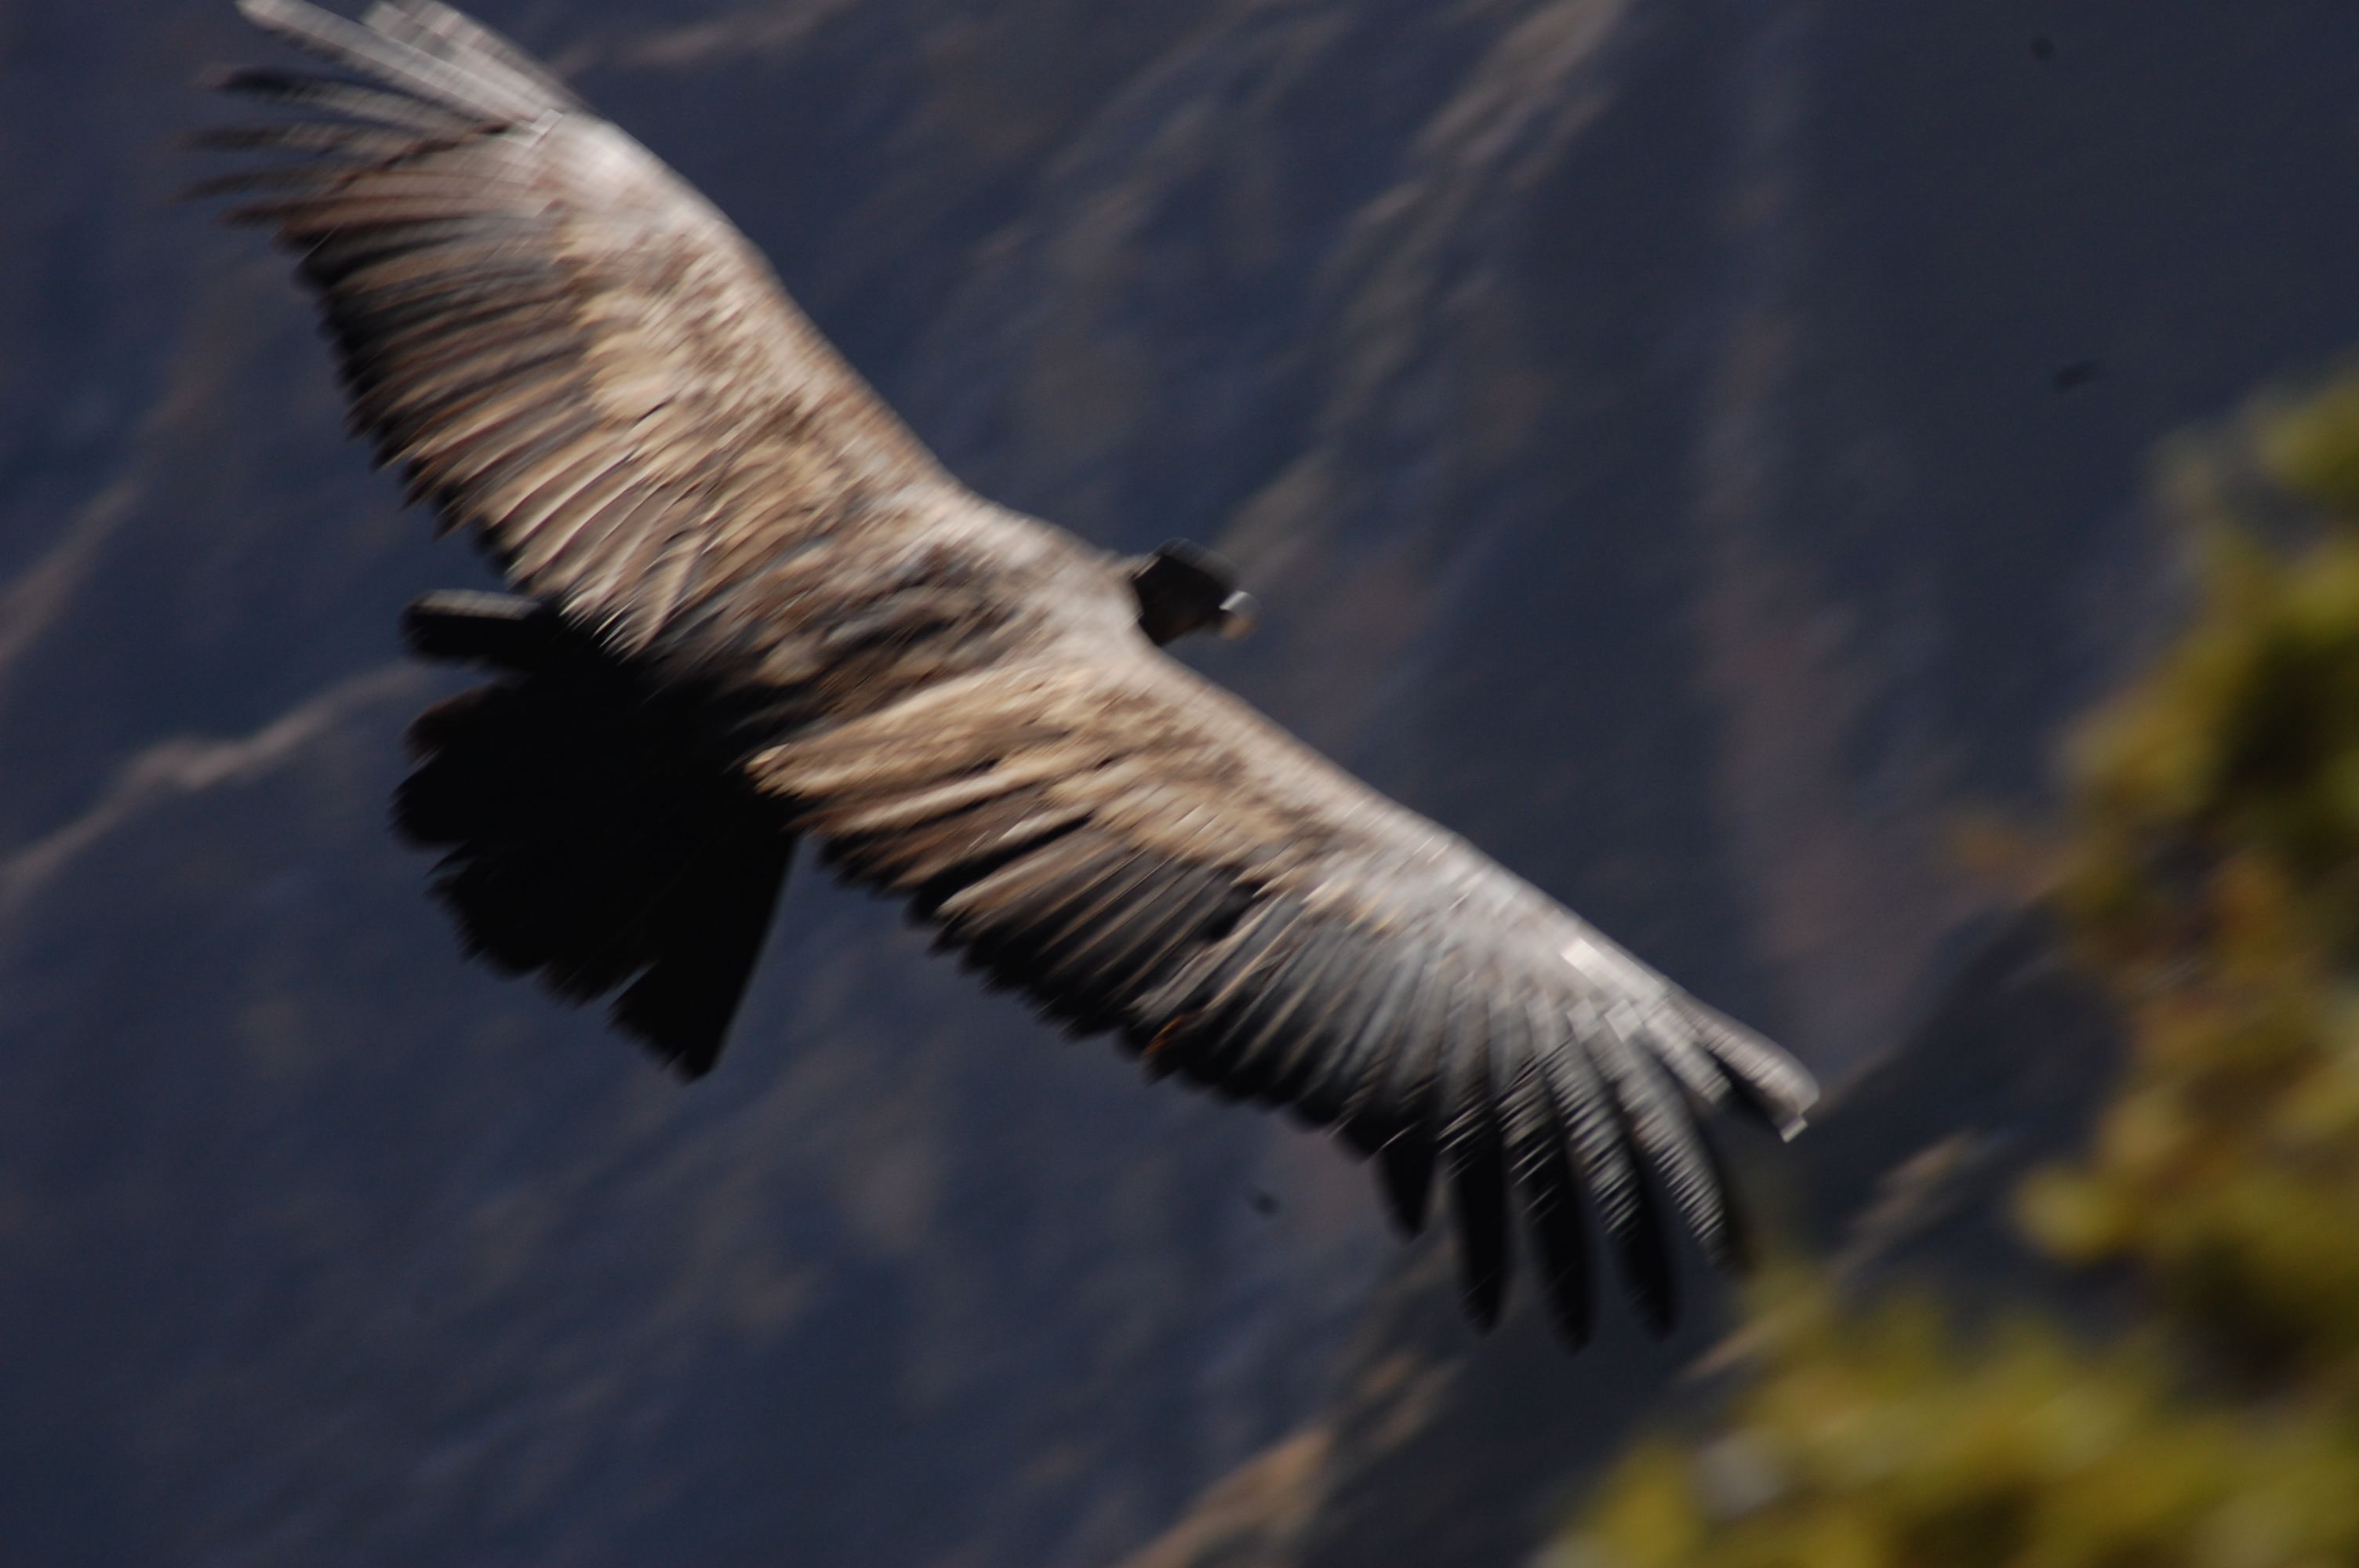 Condor in flight, up close, and from above, with full black/brown plummage